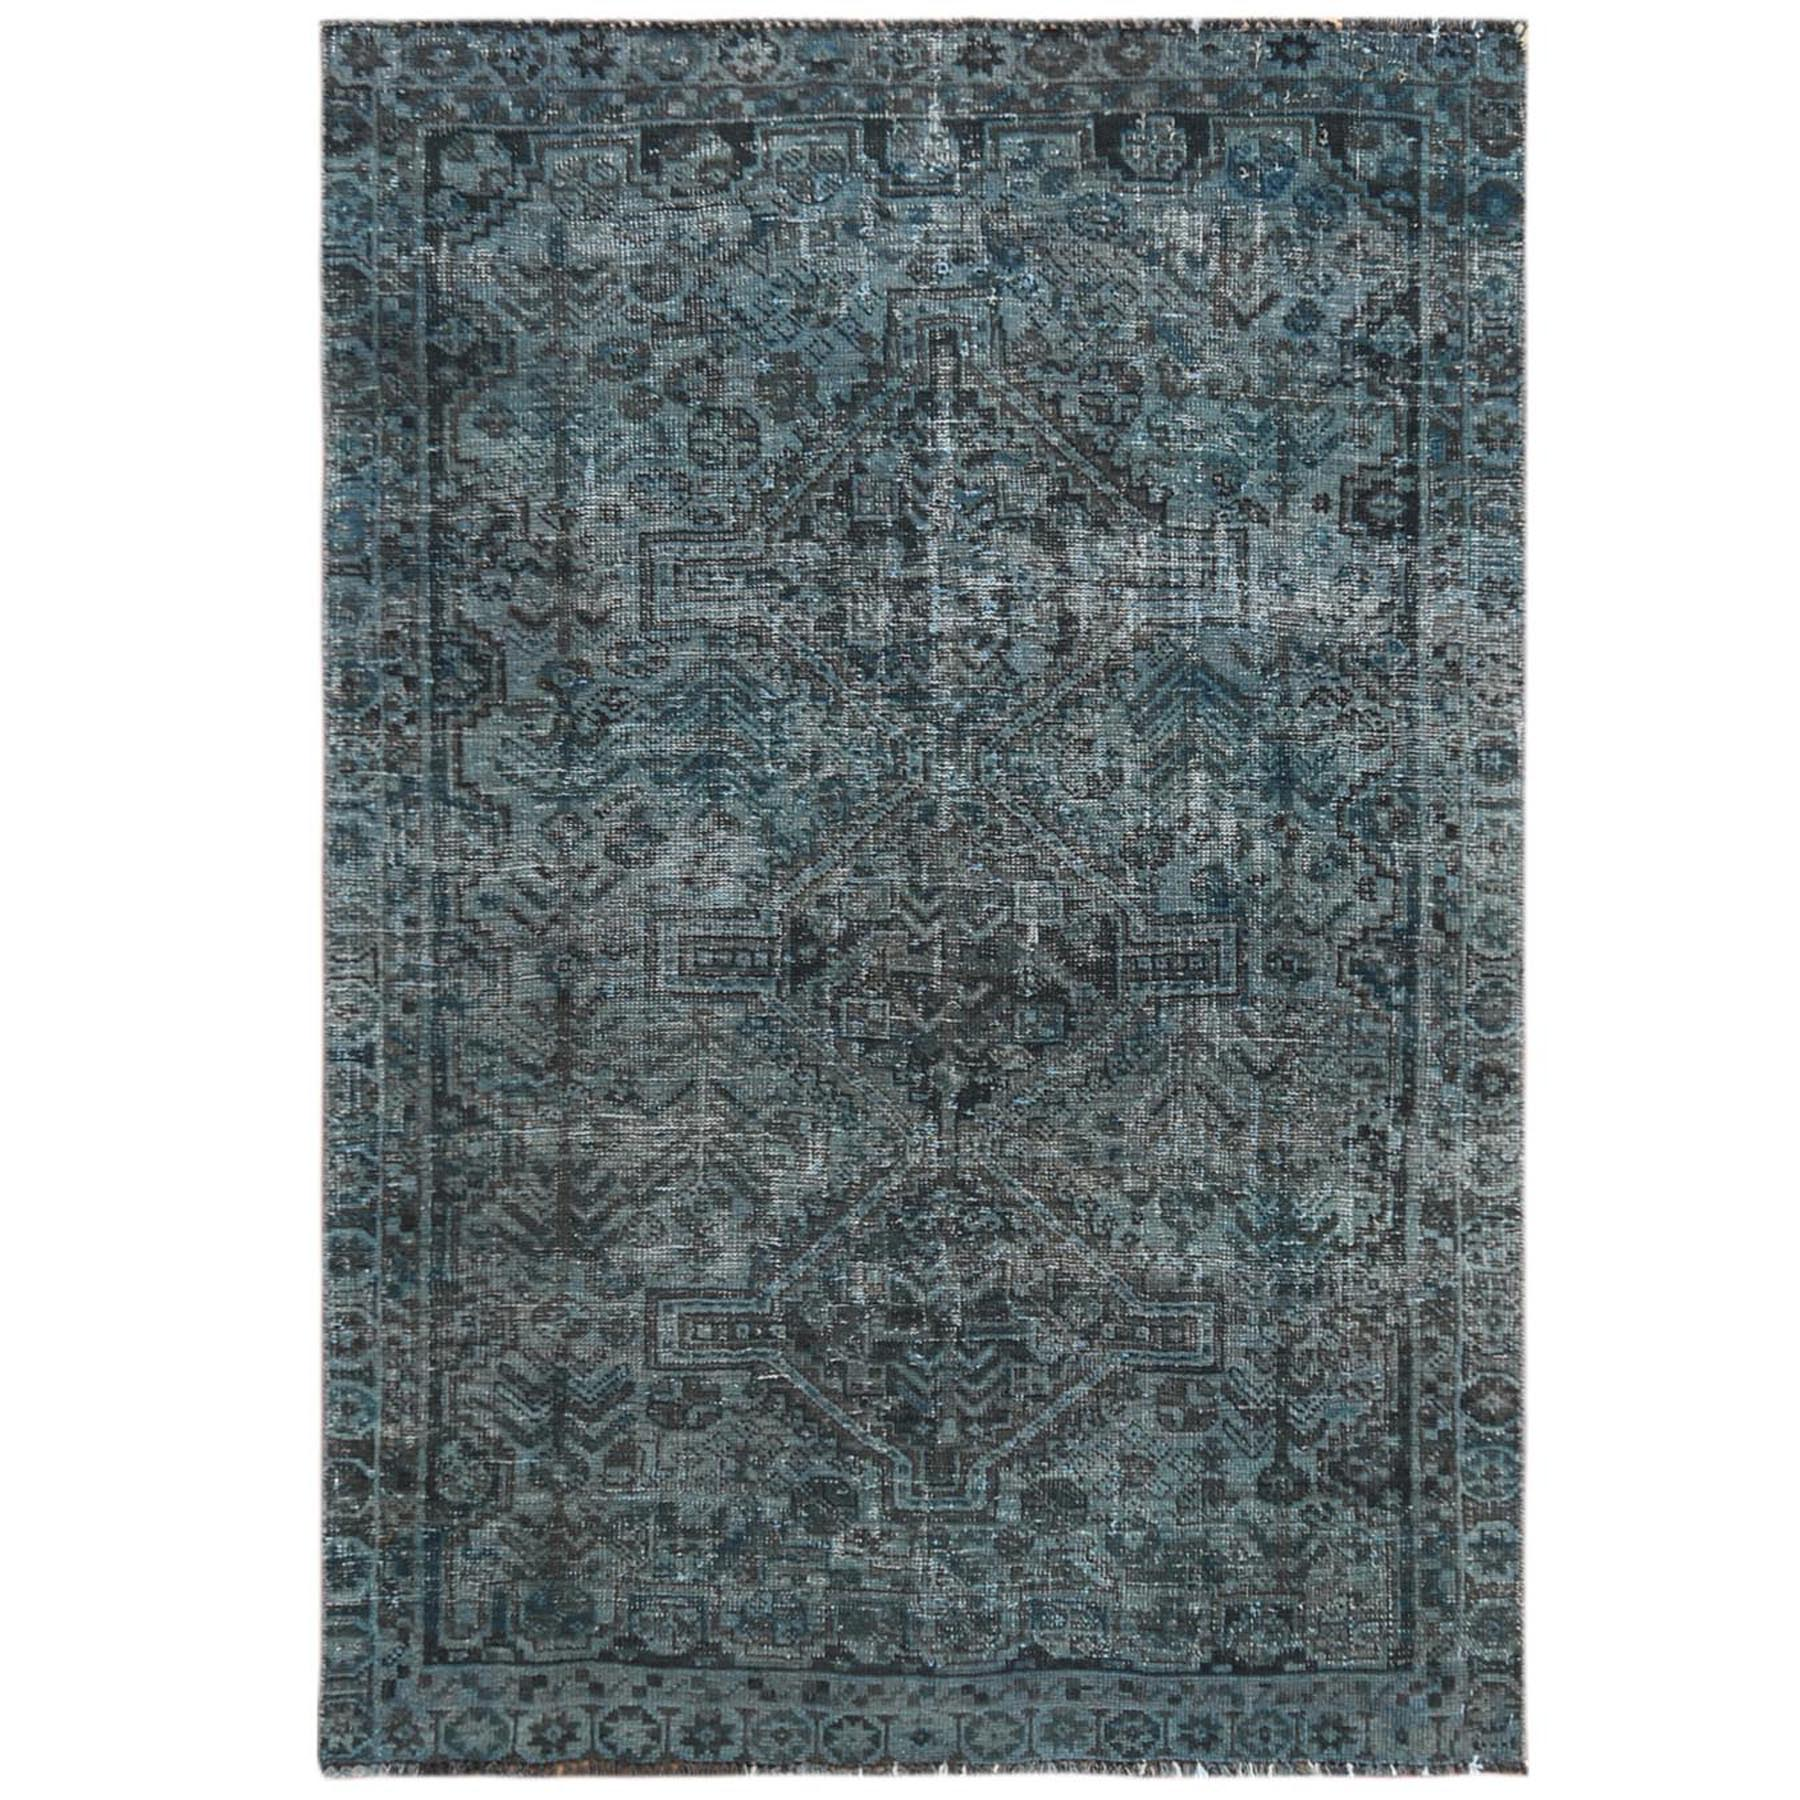 Fetneh Collection And Vintage Overdyed Collection Hand Knotted Teal Rug No: 1121108